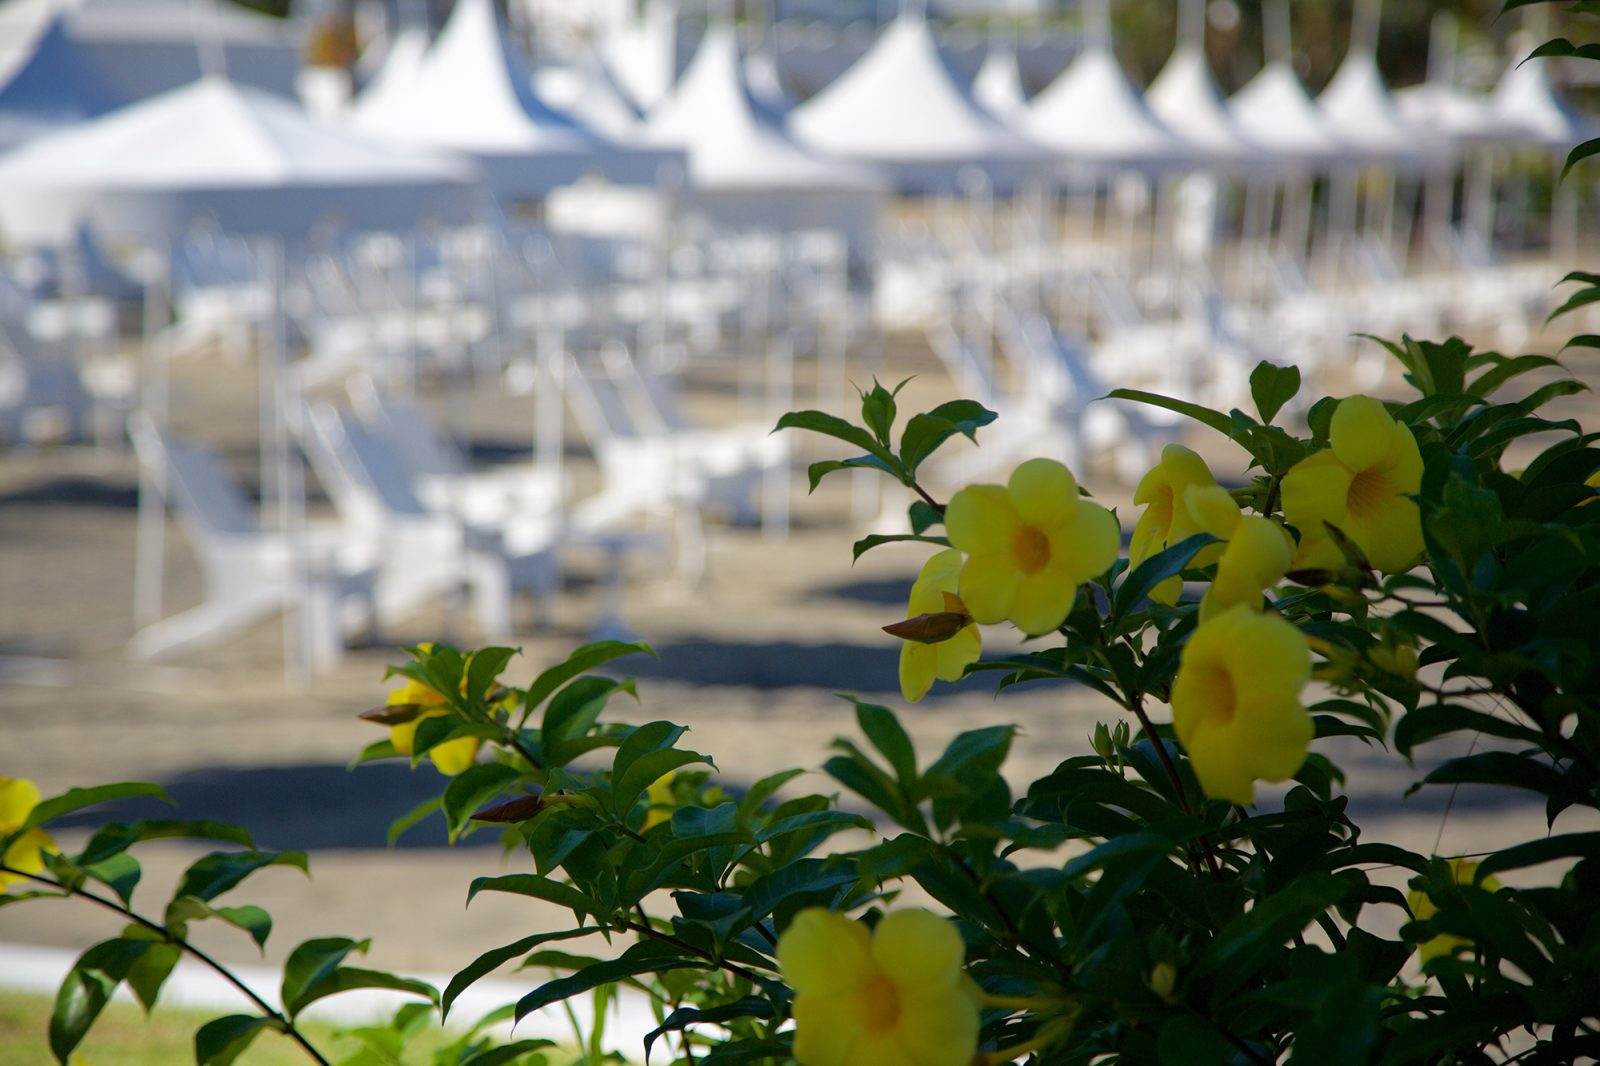 Flowers at Hotel Las Hadas by Brisas beach